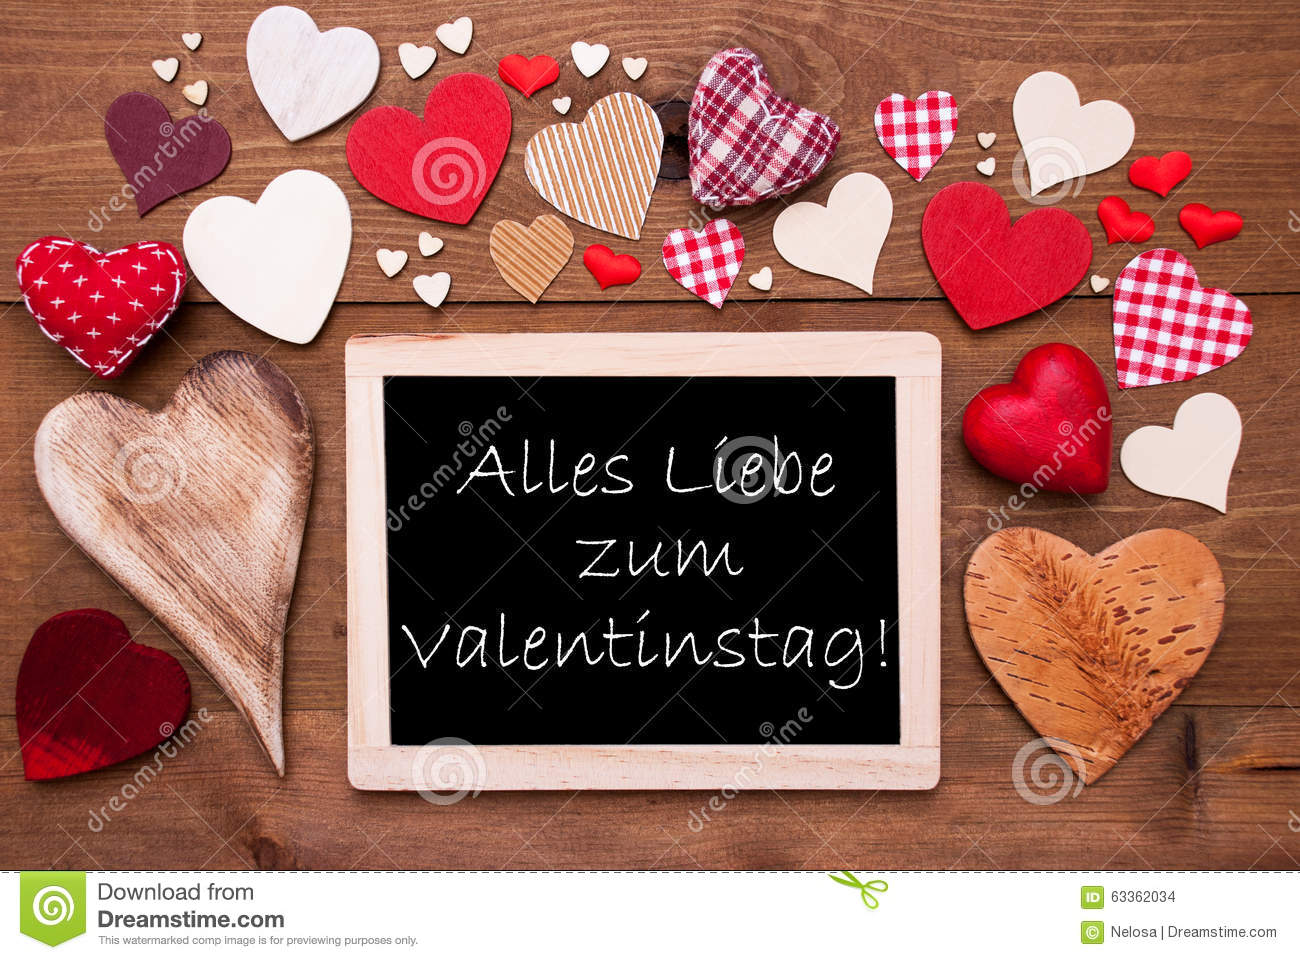 One Chalkbord, Many Red Hearts, Valentinstag Means Valentines Day